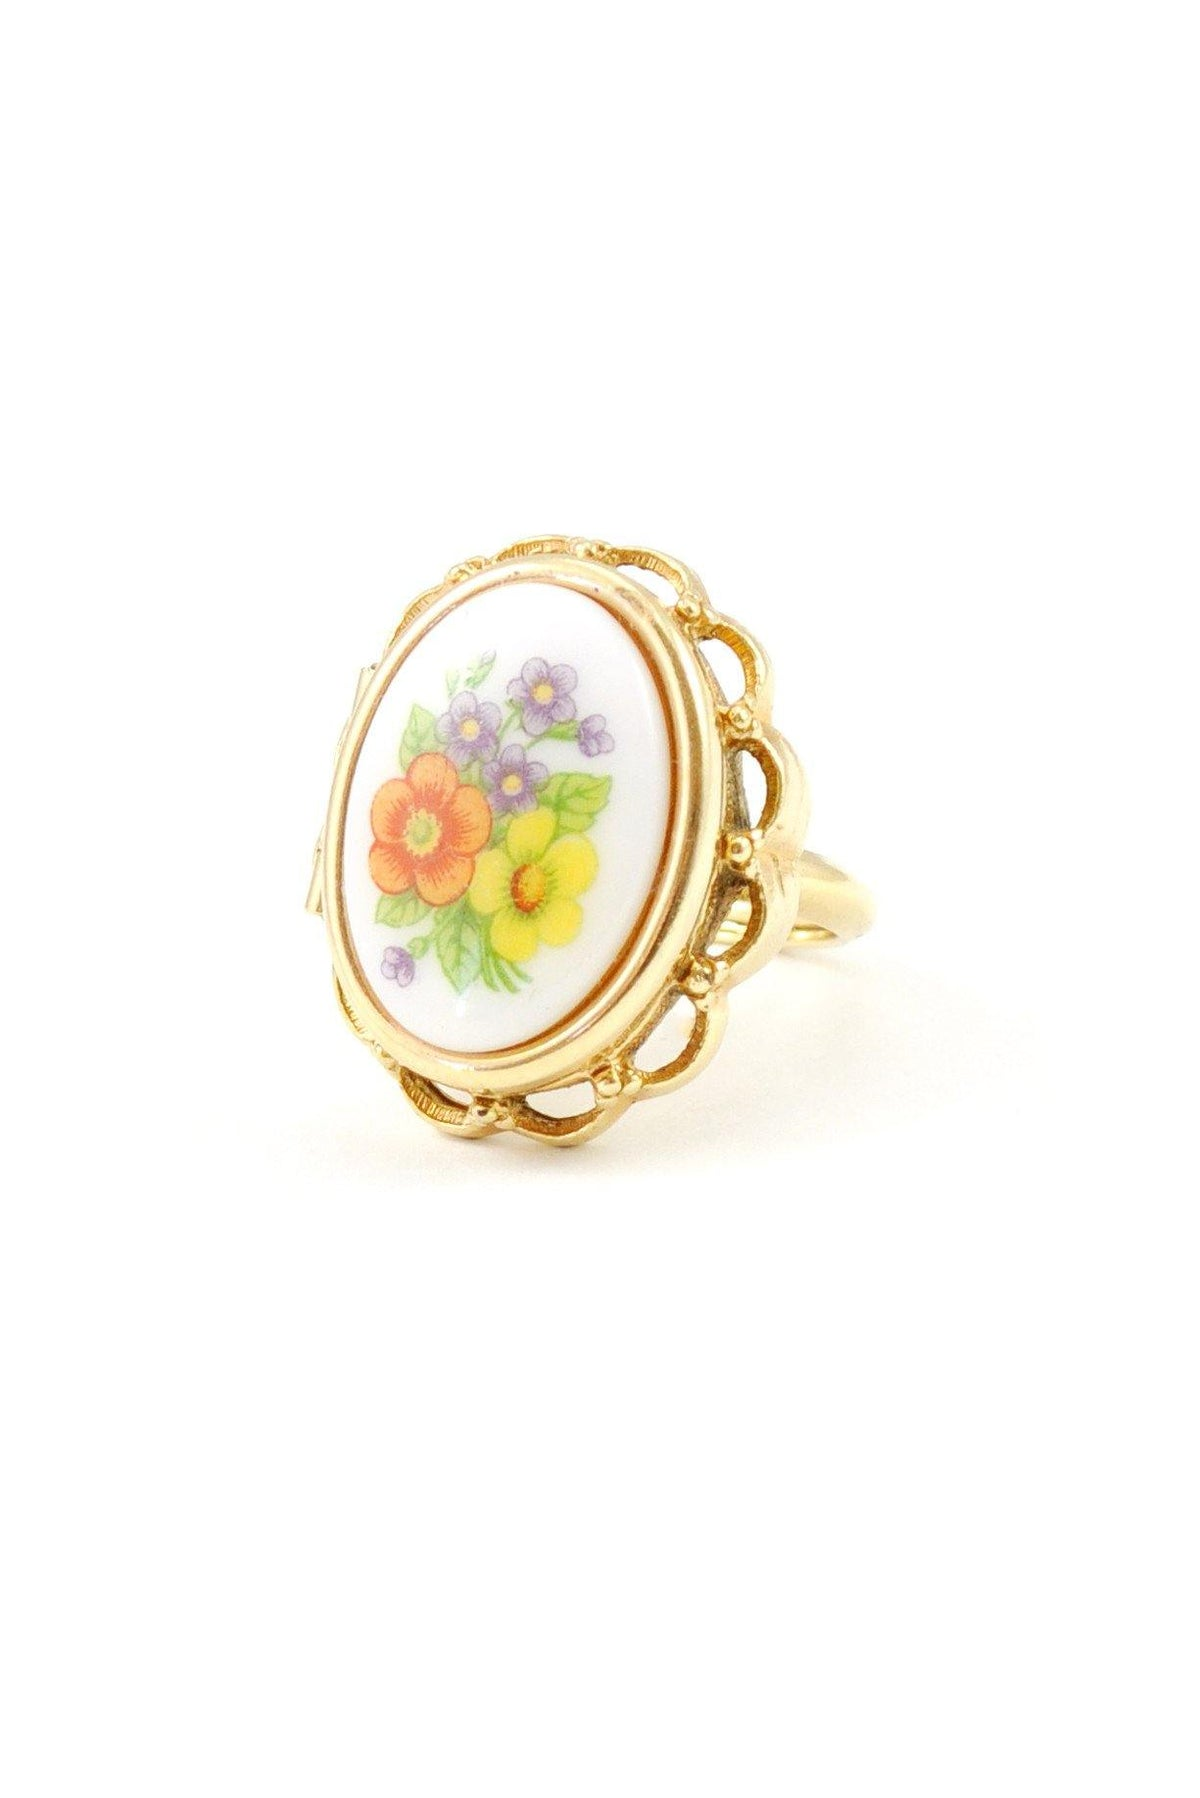 60s__Avon_Floral Locket Ring